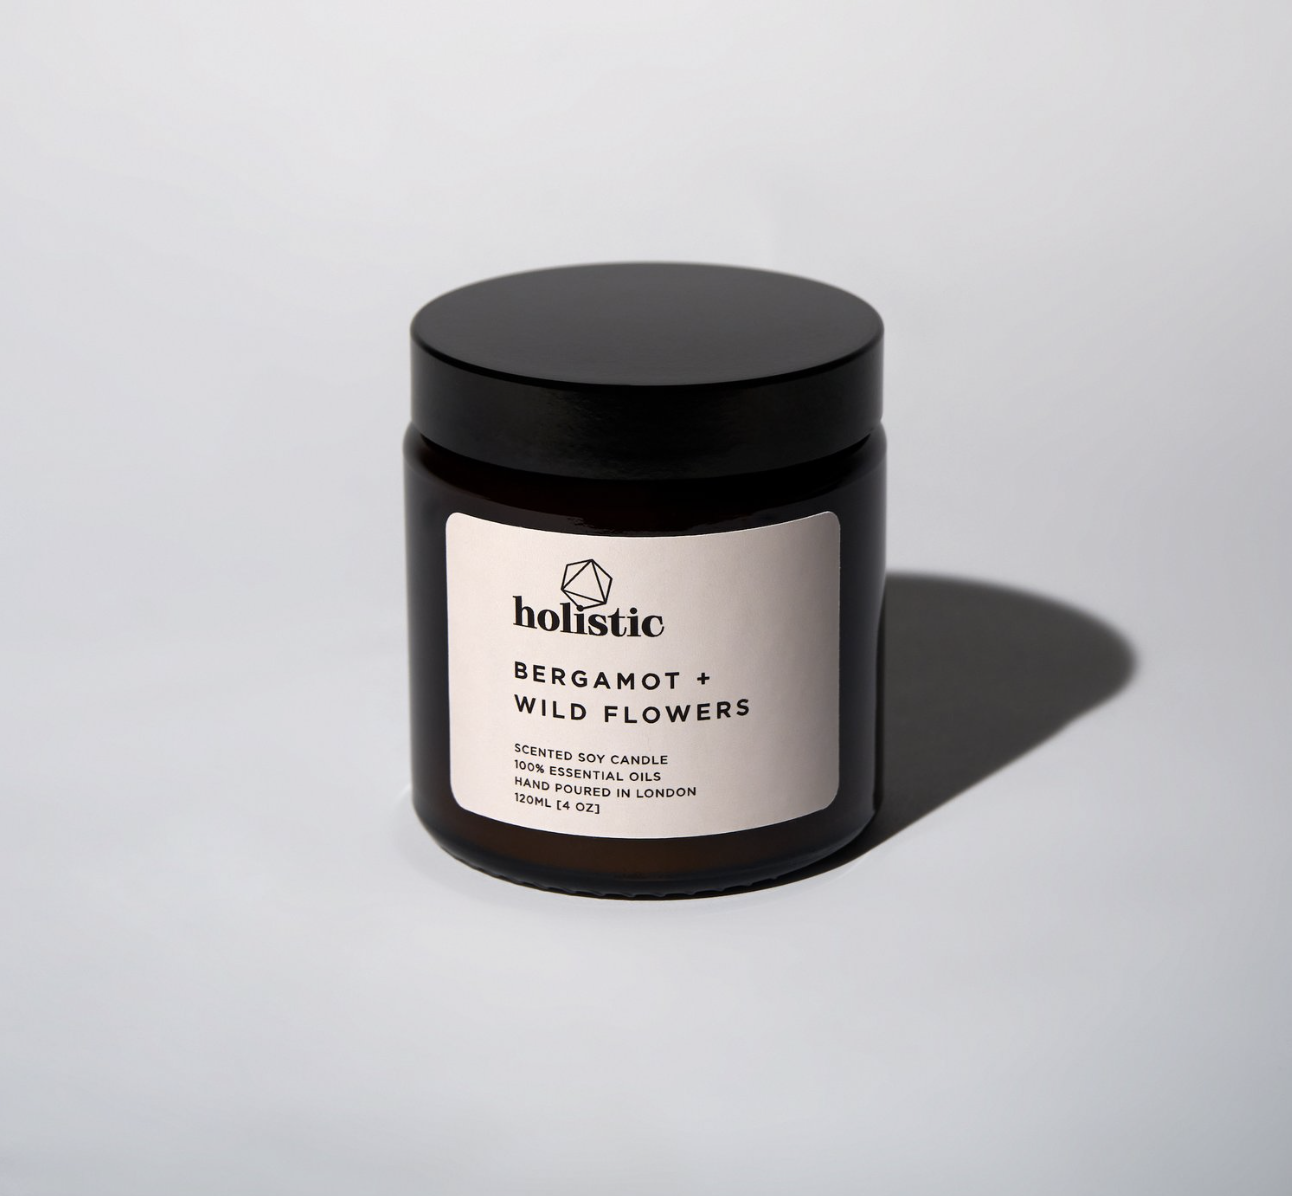 Holistic candles are hand poured soy wax, vegan friendly